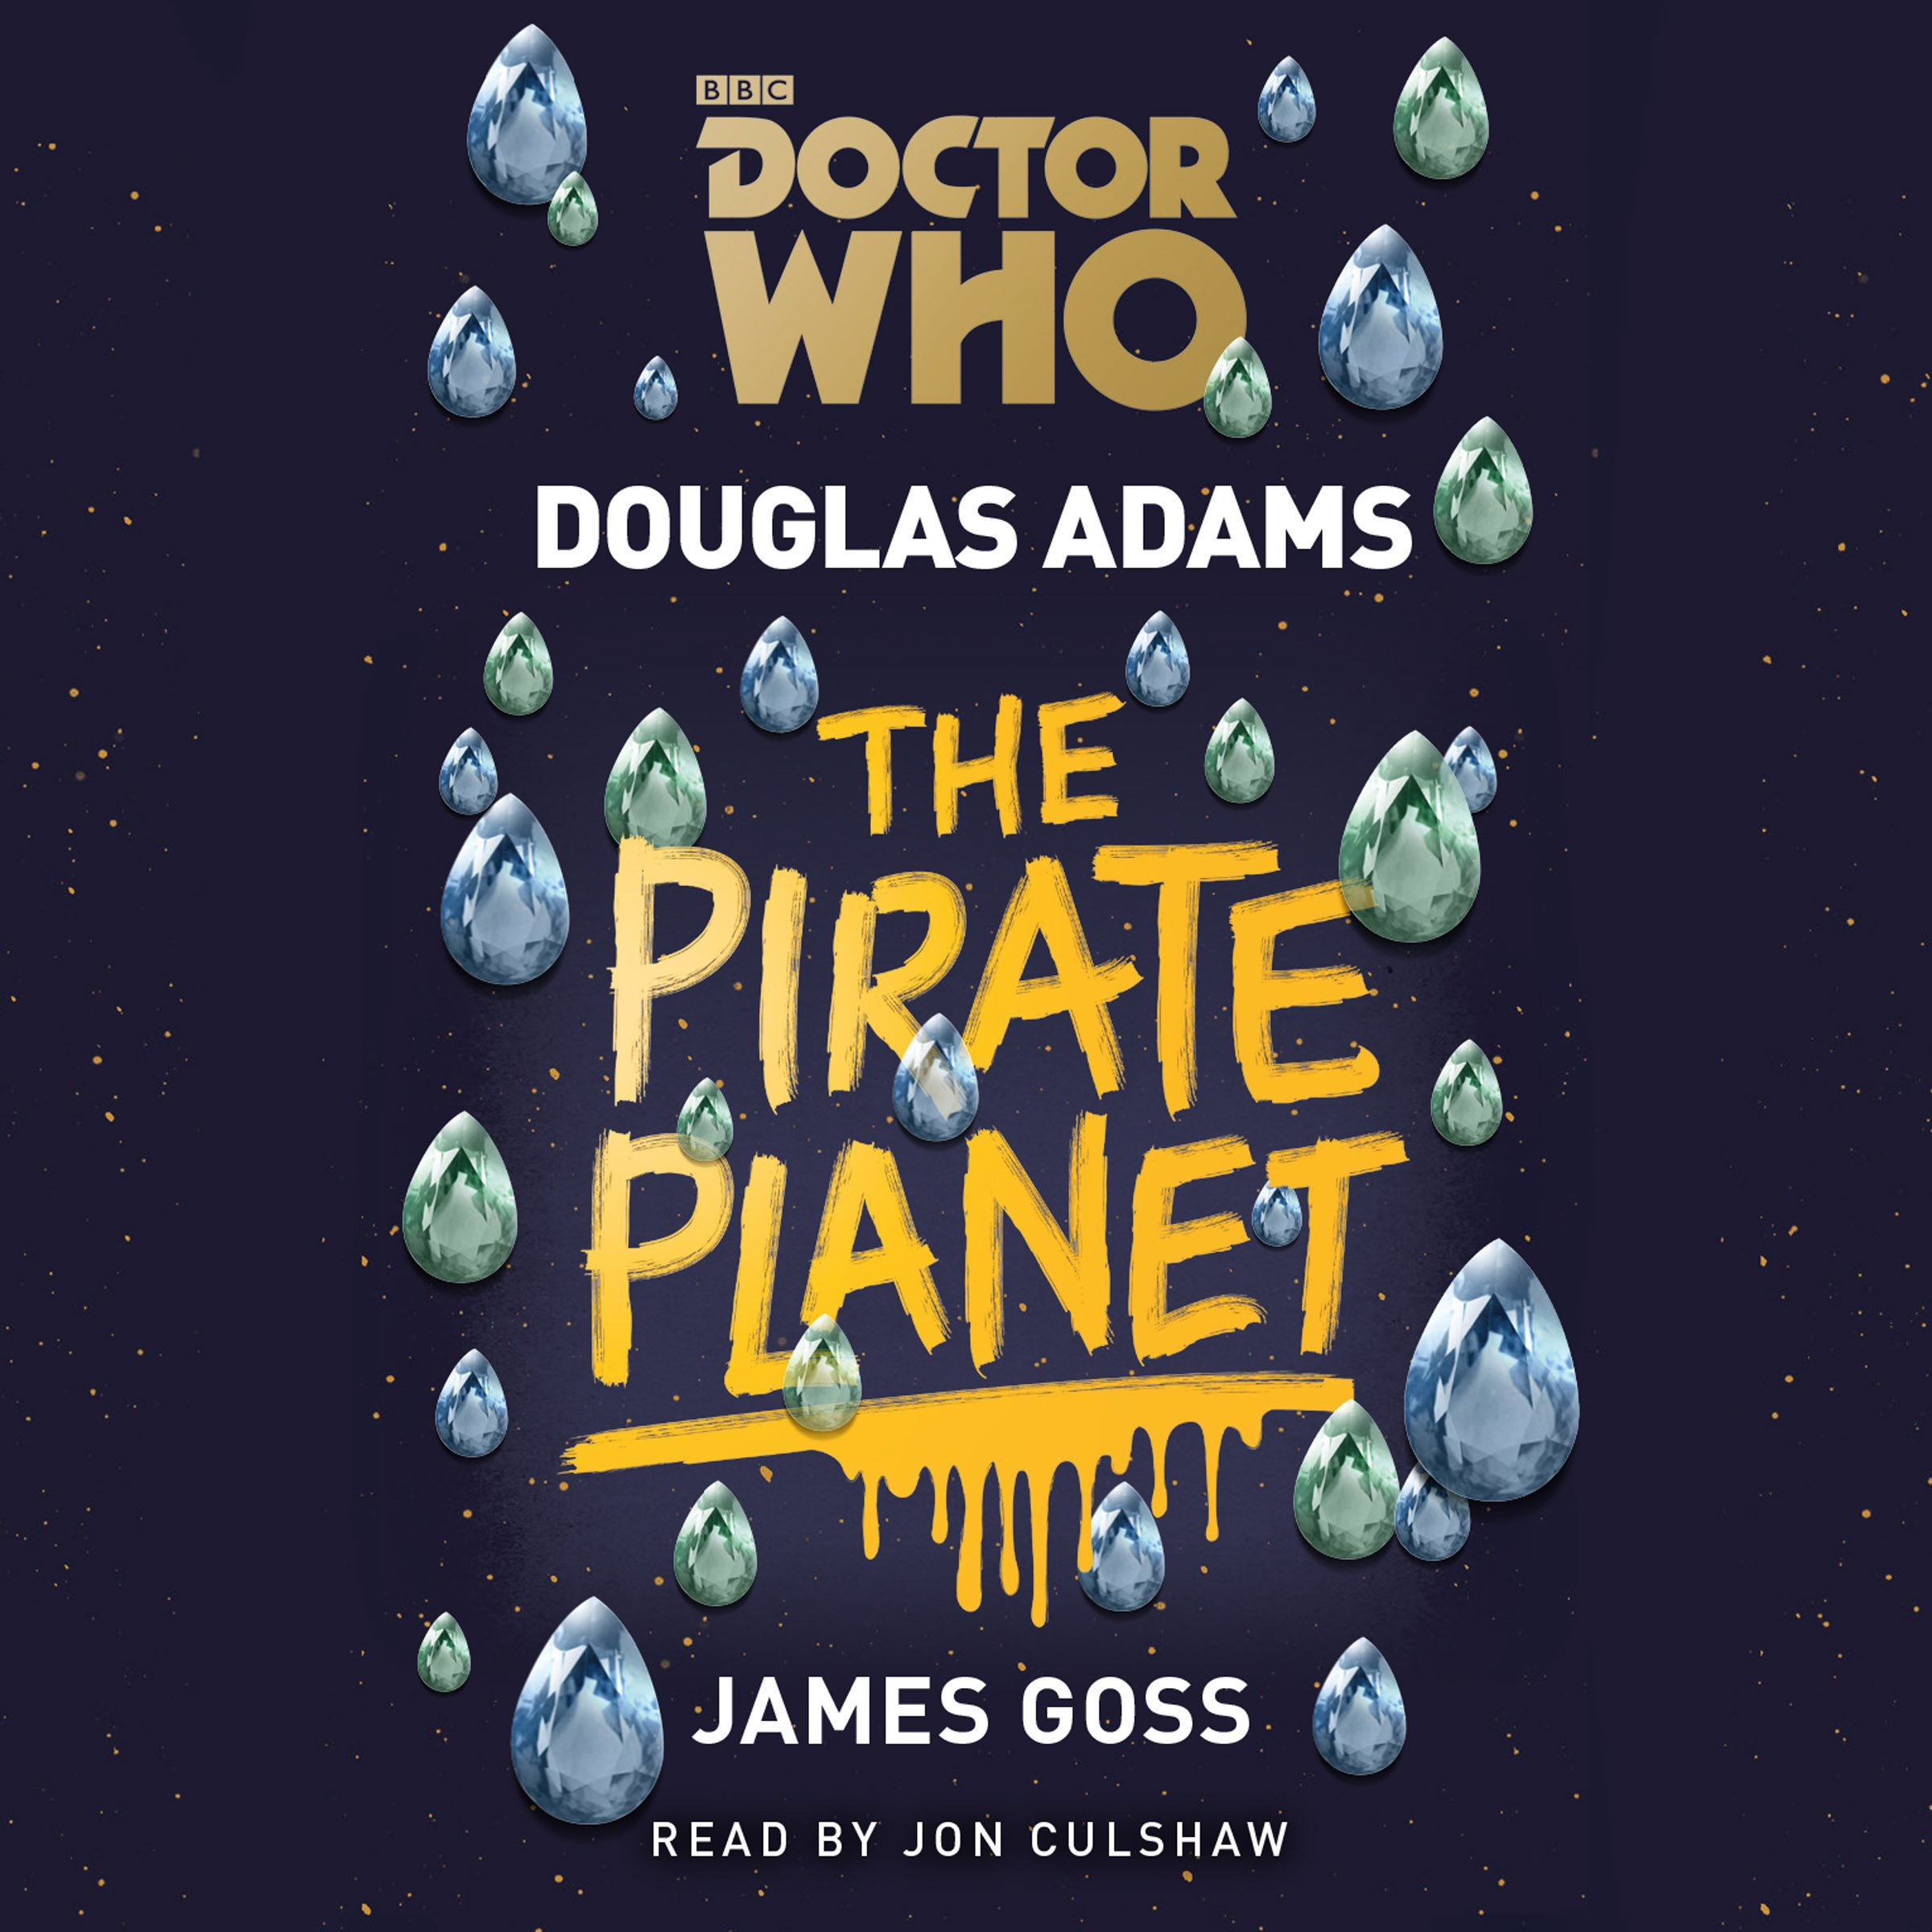 The Pirate Planet (audiobook) (Credit: BBC Audio)